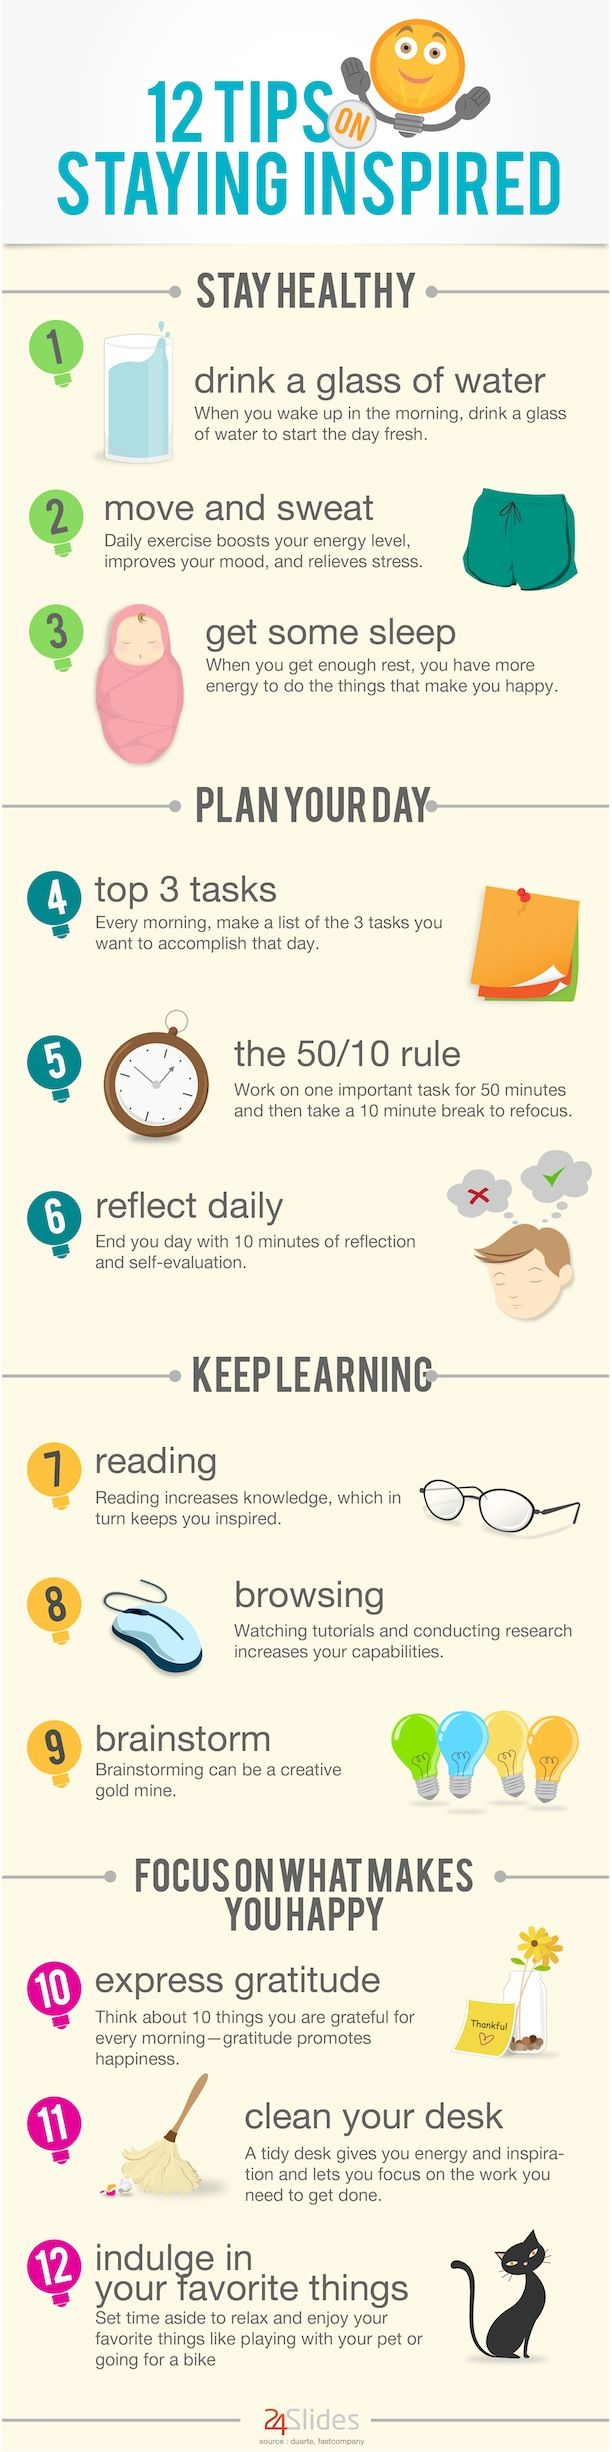 12 Ways to Stay Inspired at Work